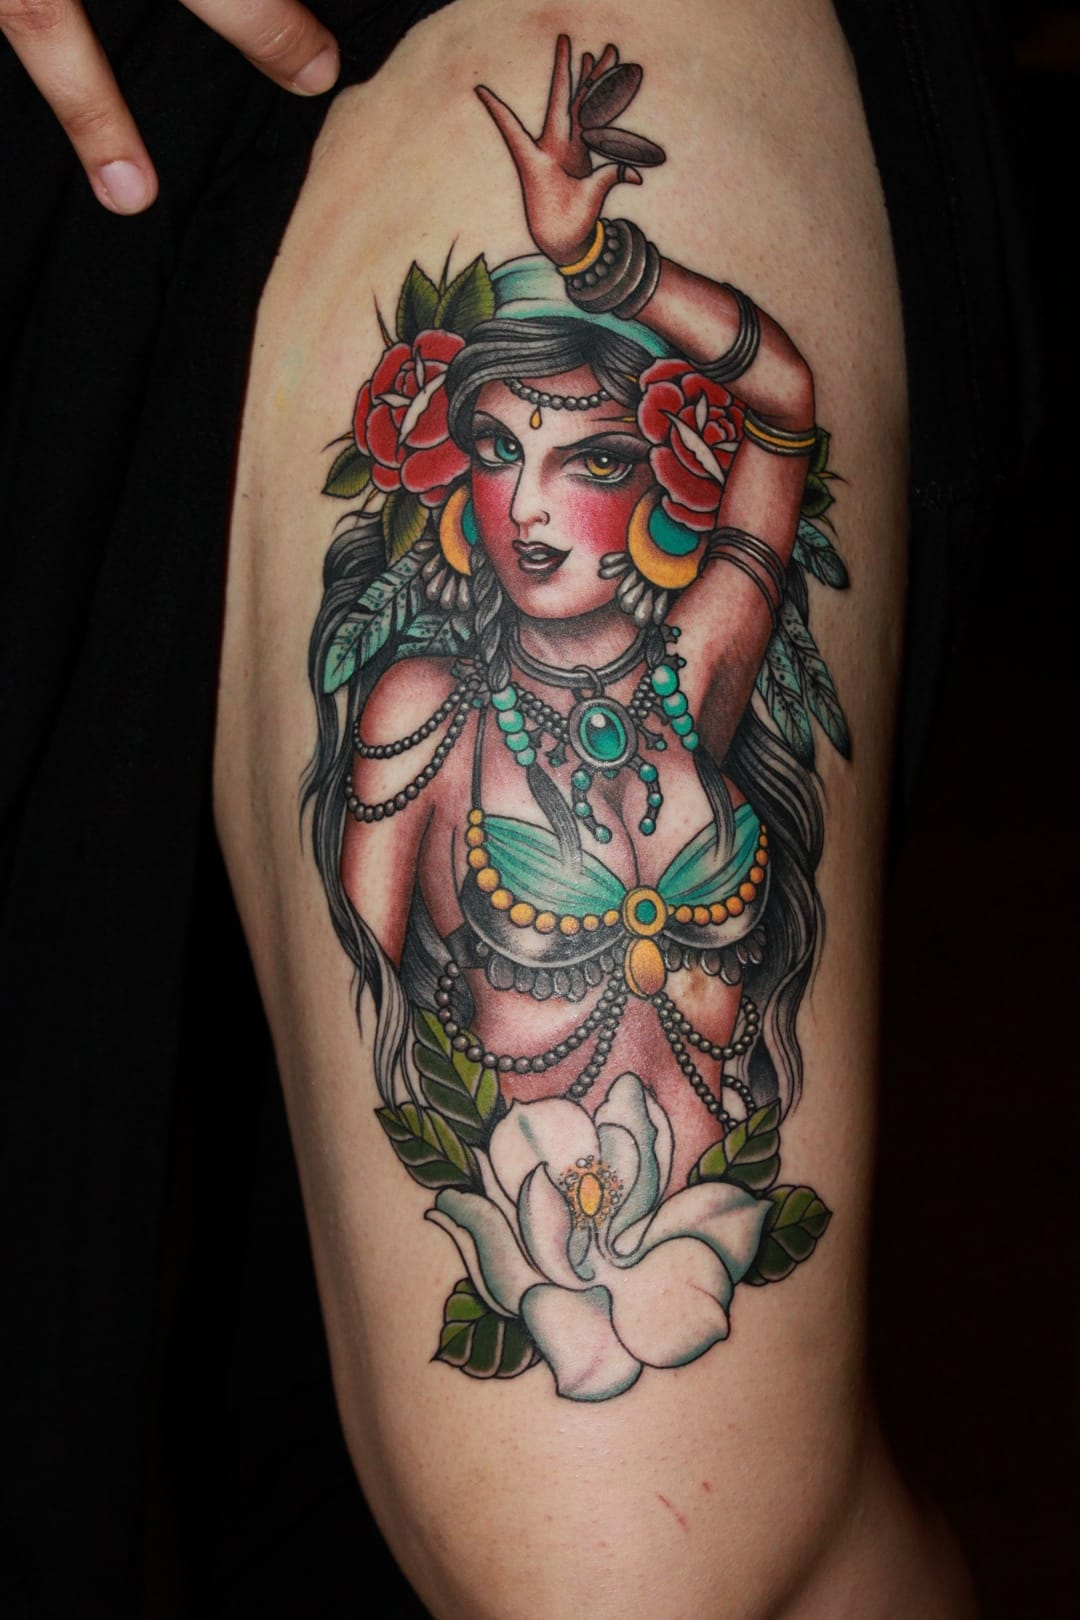 A cool neo traditional belly dancer by Valerie Vargas.